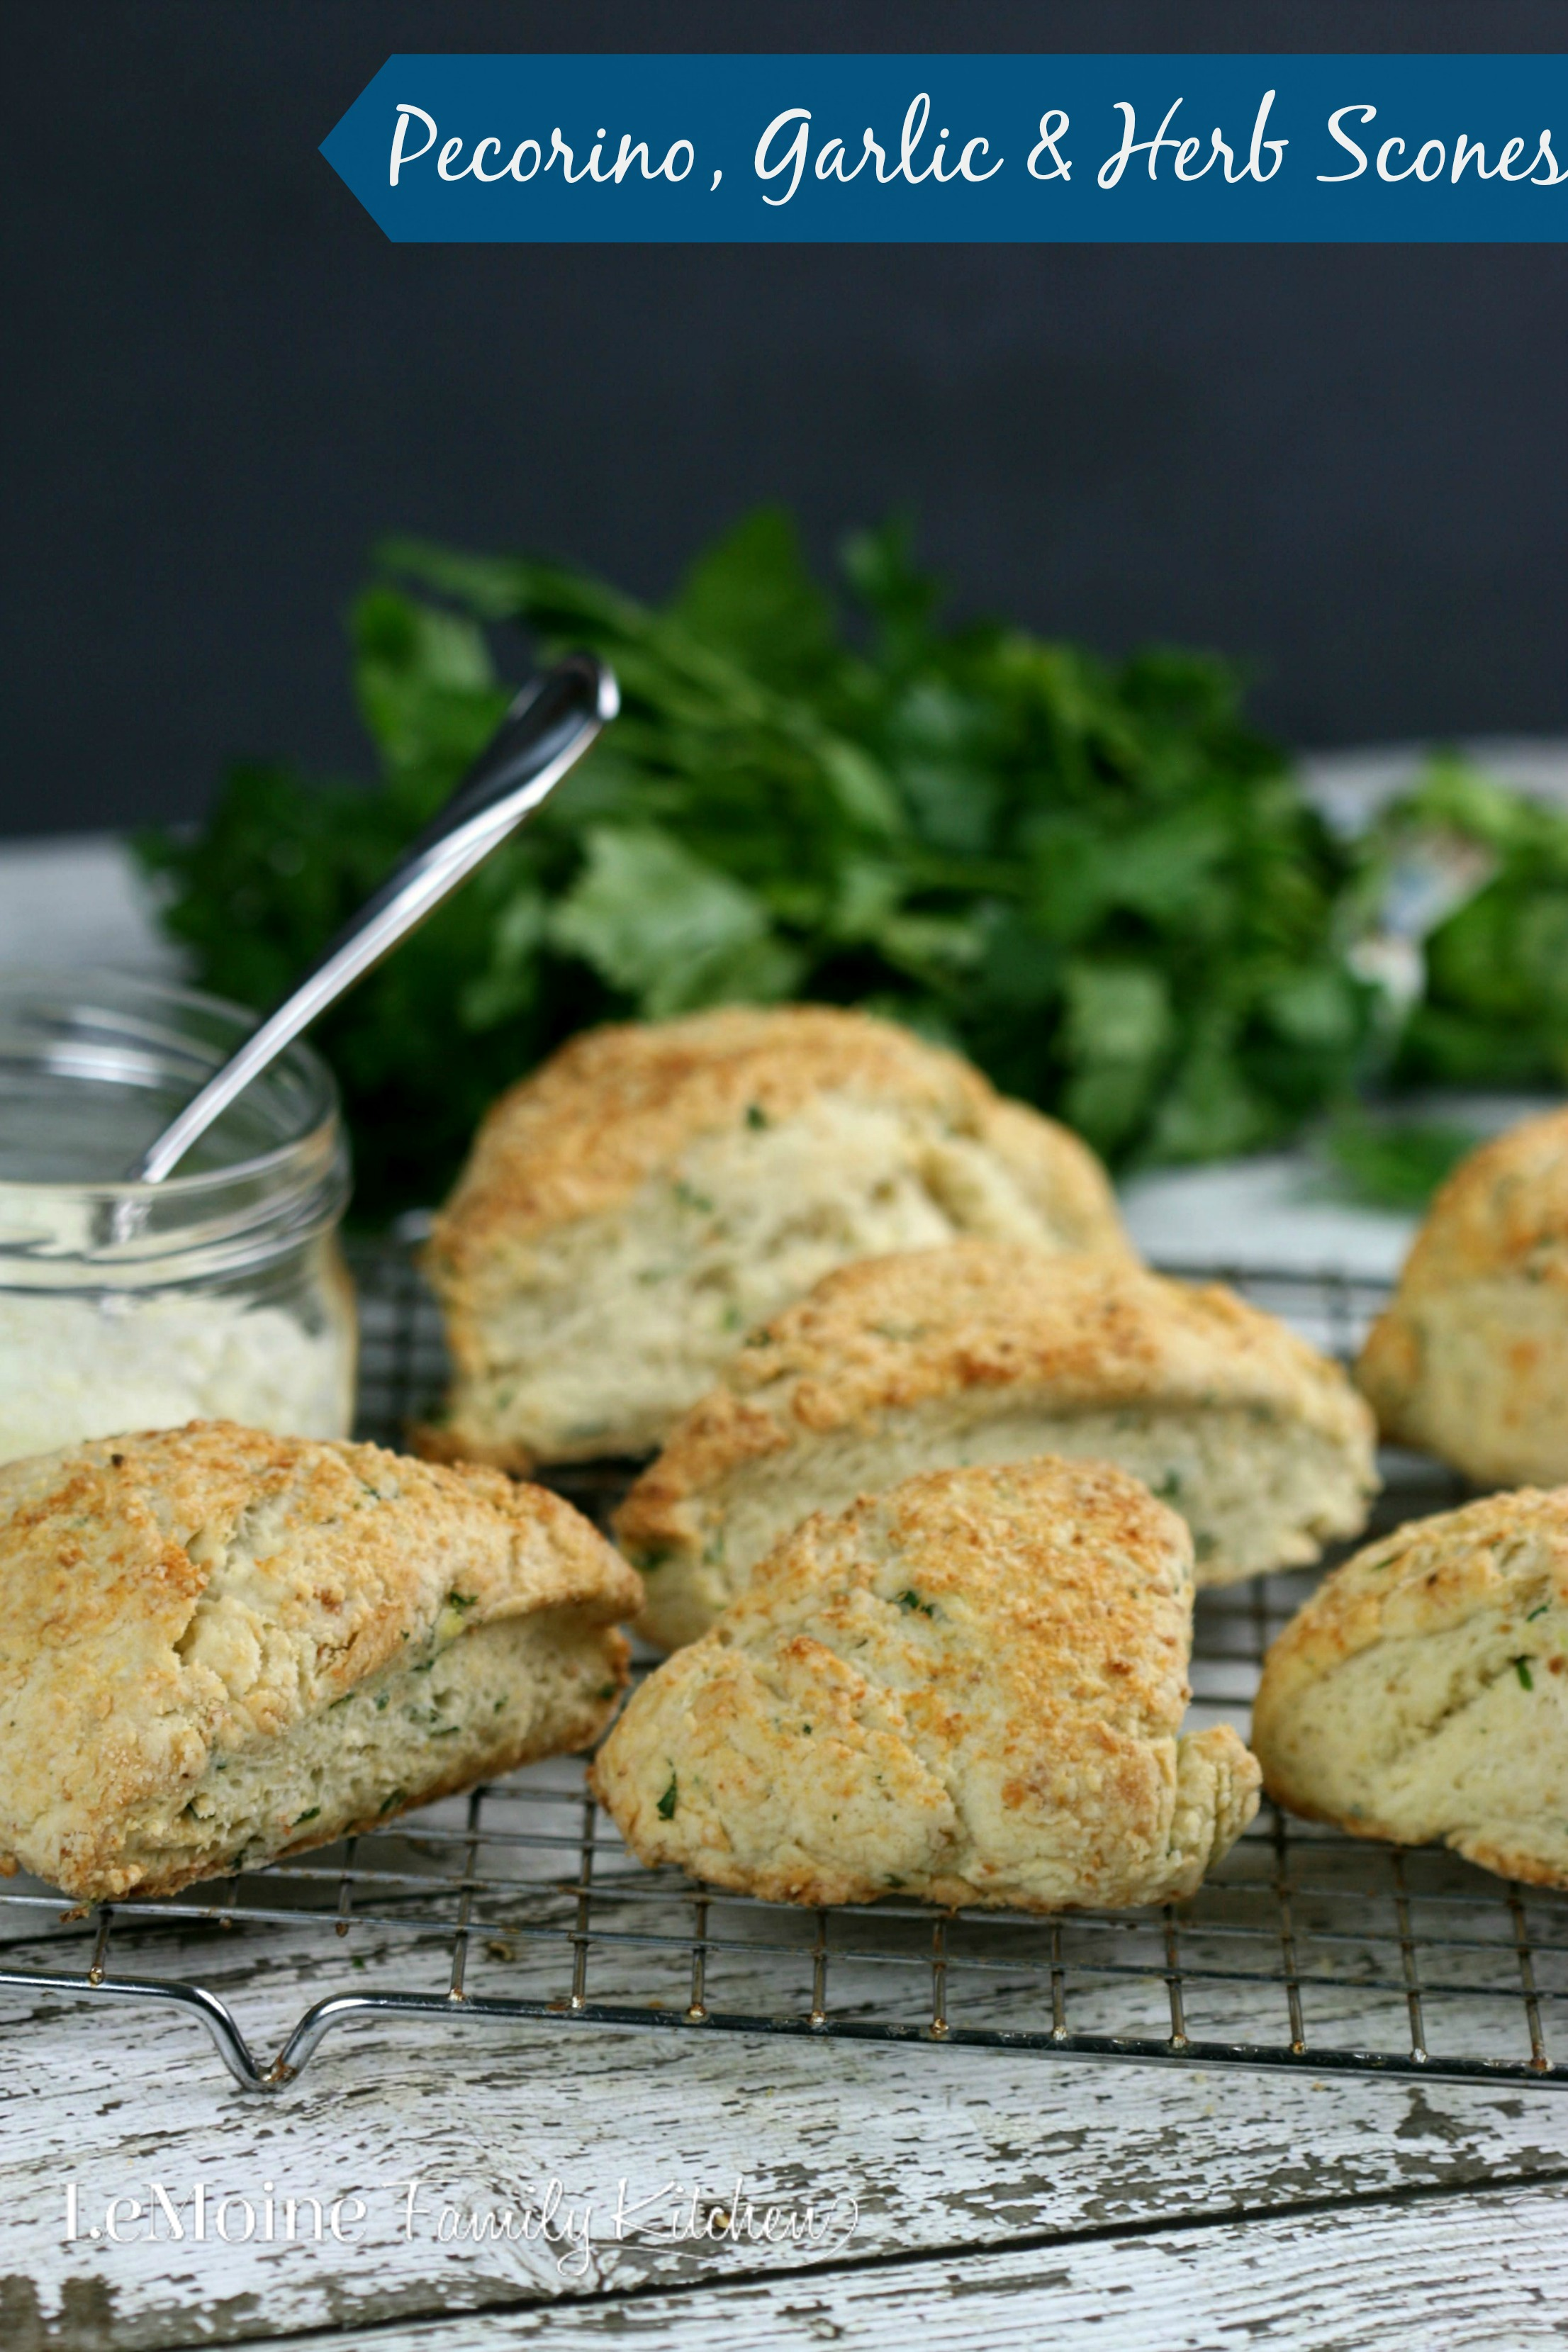 Pecorino, Garlic & Herb Scones | LeMoine Family Kitchen. Absolutely incredible savory scones with grated pecorino cheese, garlic and herb seasoning. Perfect texture and flavor!